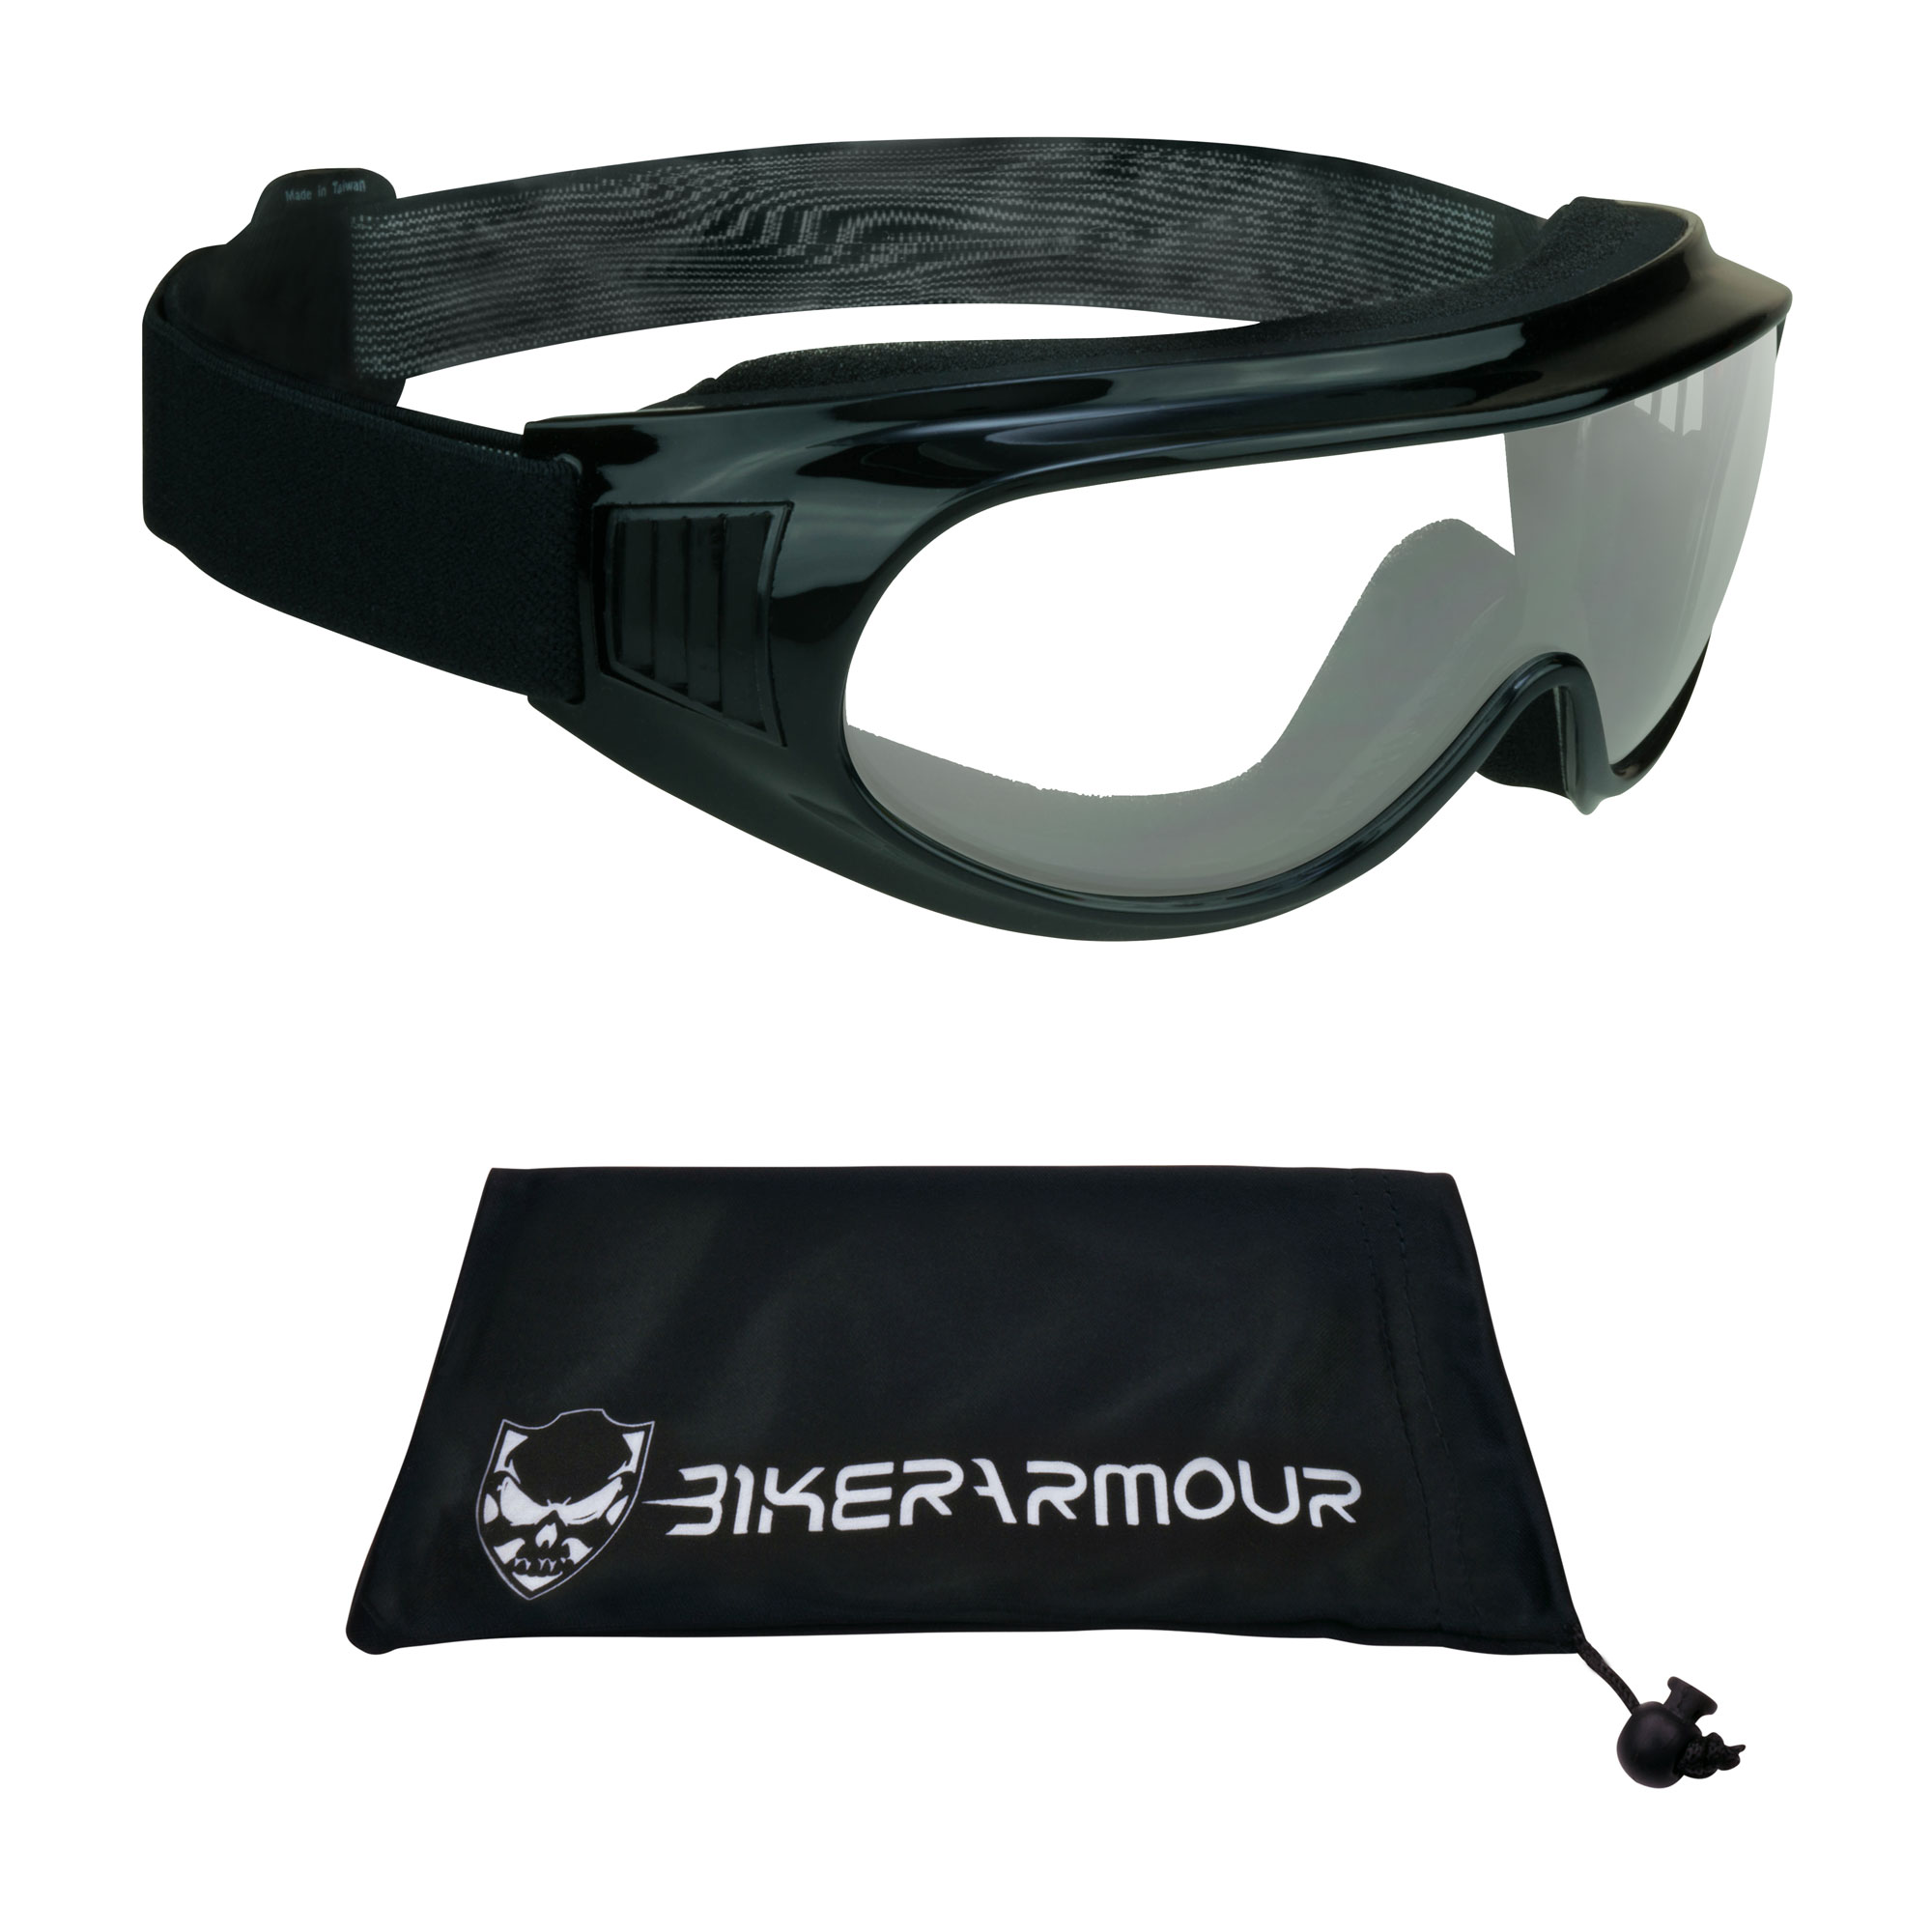 Motorcycle Fit Over Rx Glasses Goggles Clear Safety Polycarbonate lens.